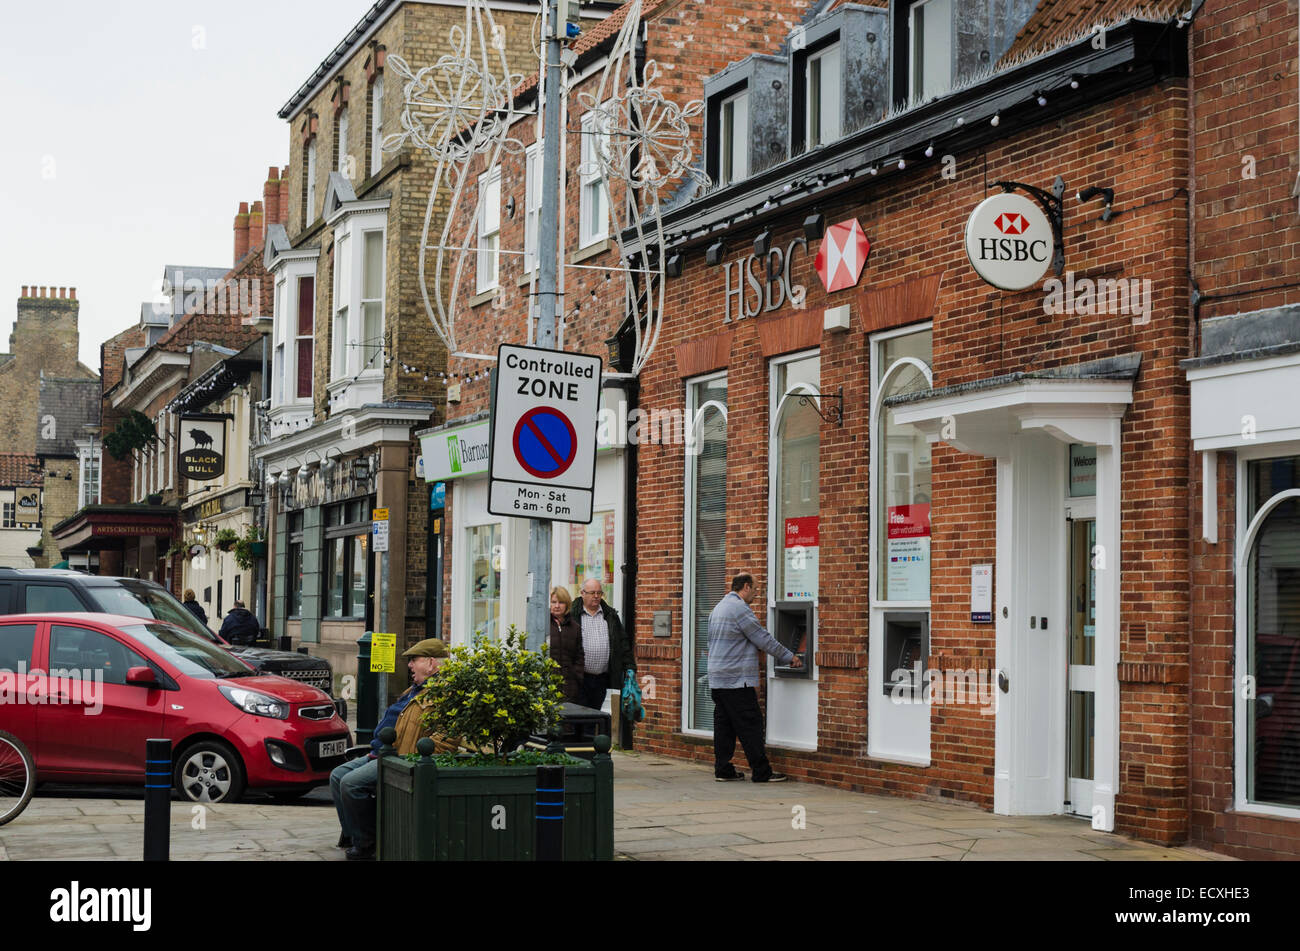 Street view in Pocklington, showing the HSBC bank and a controlled parking zone warning sign. Stock Photo